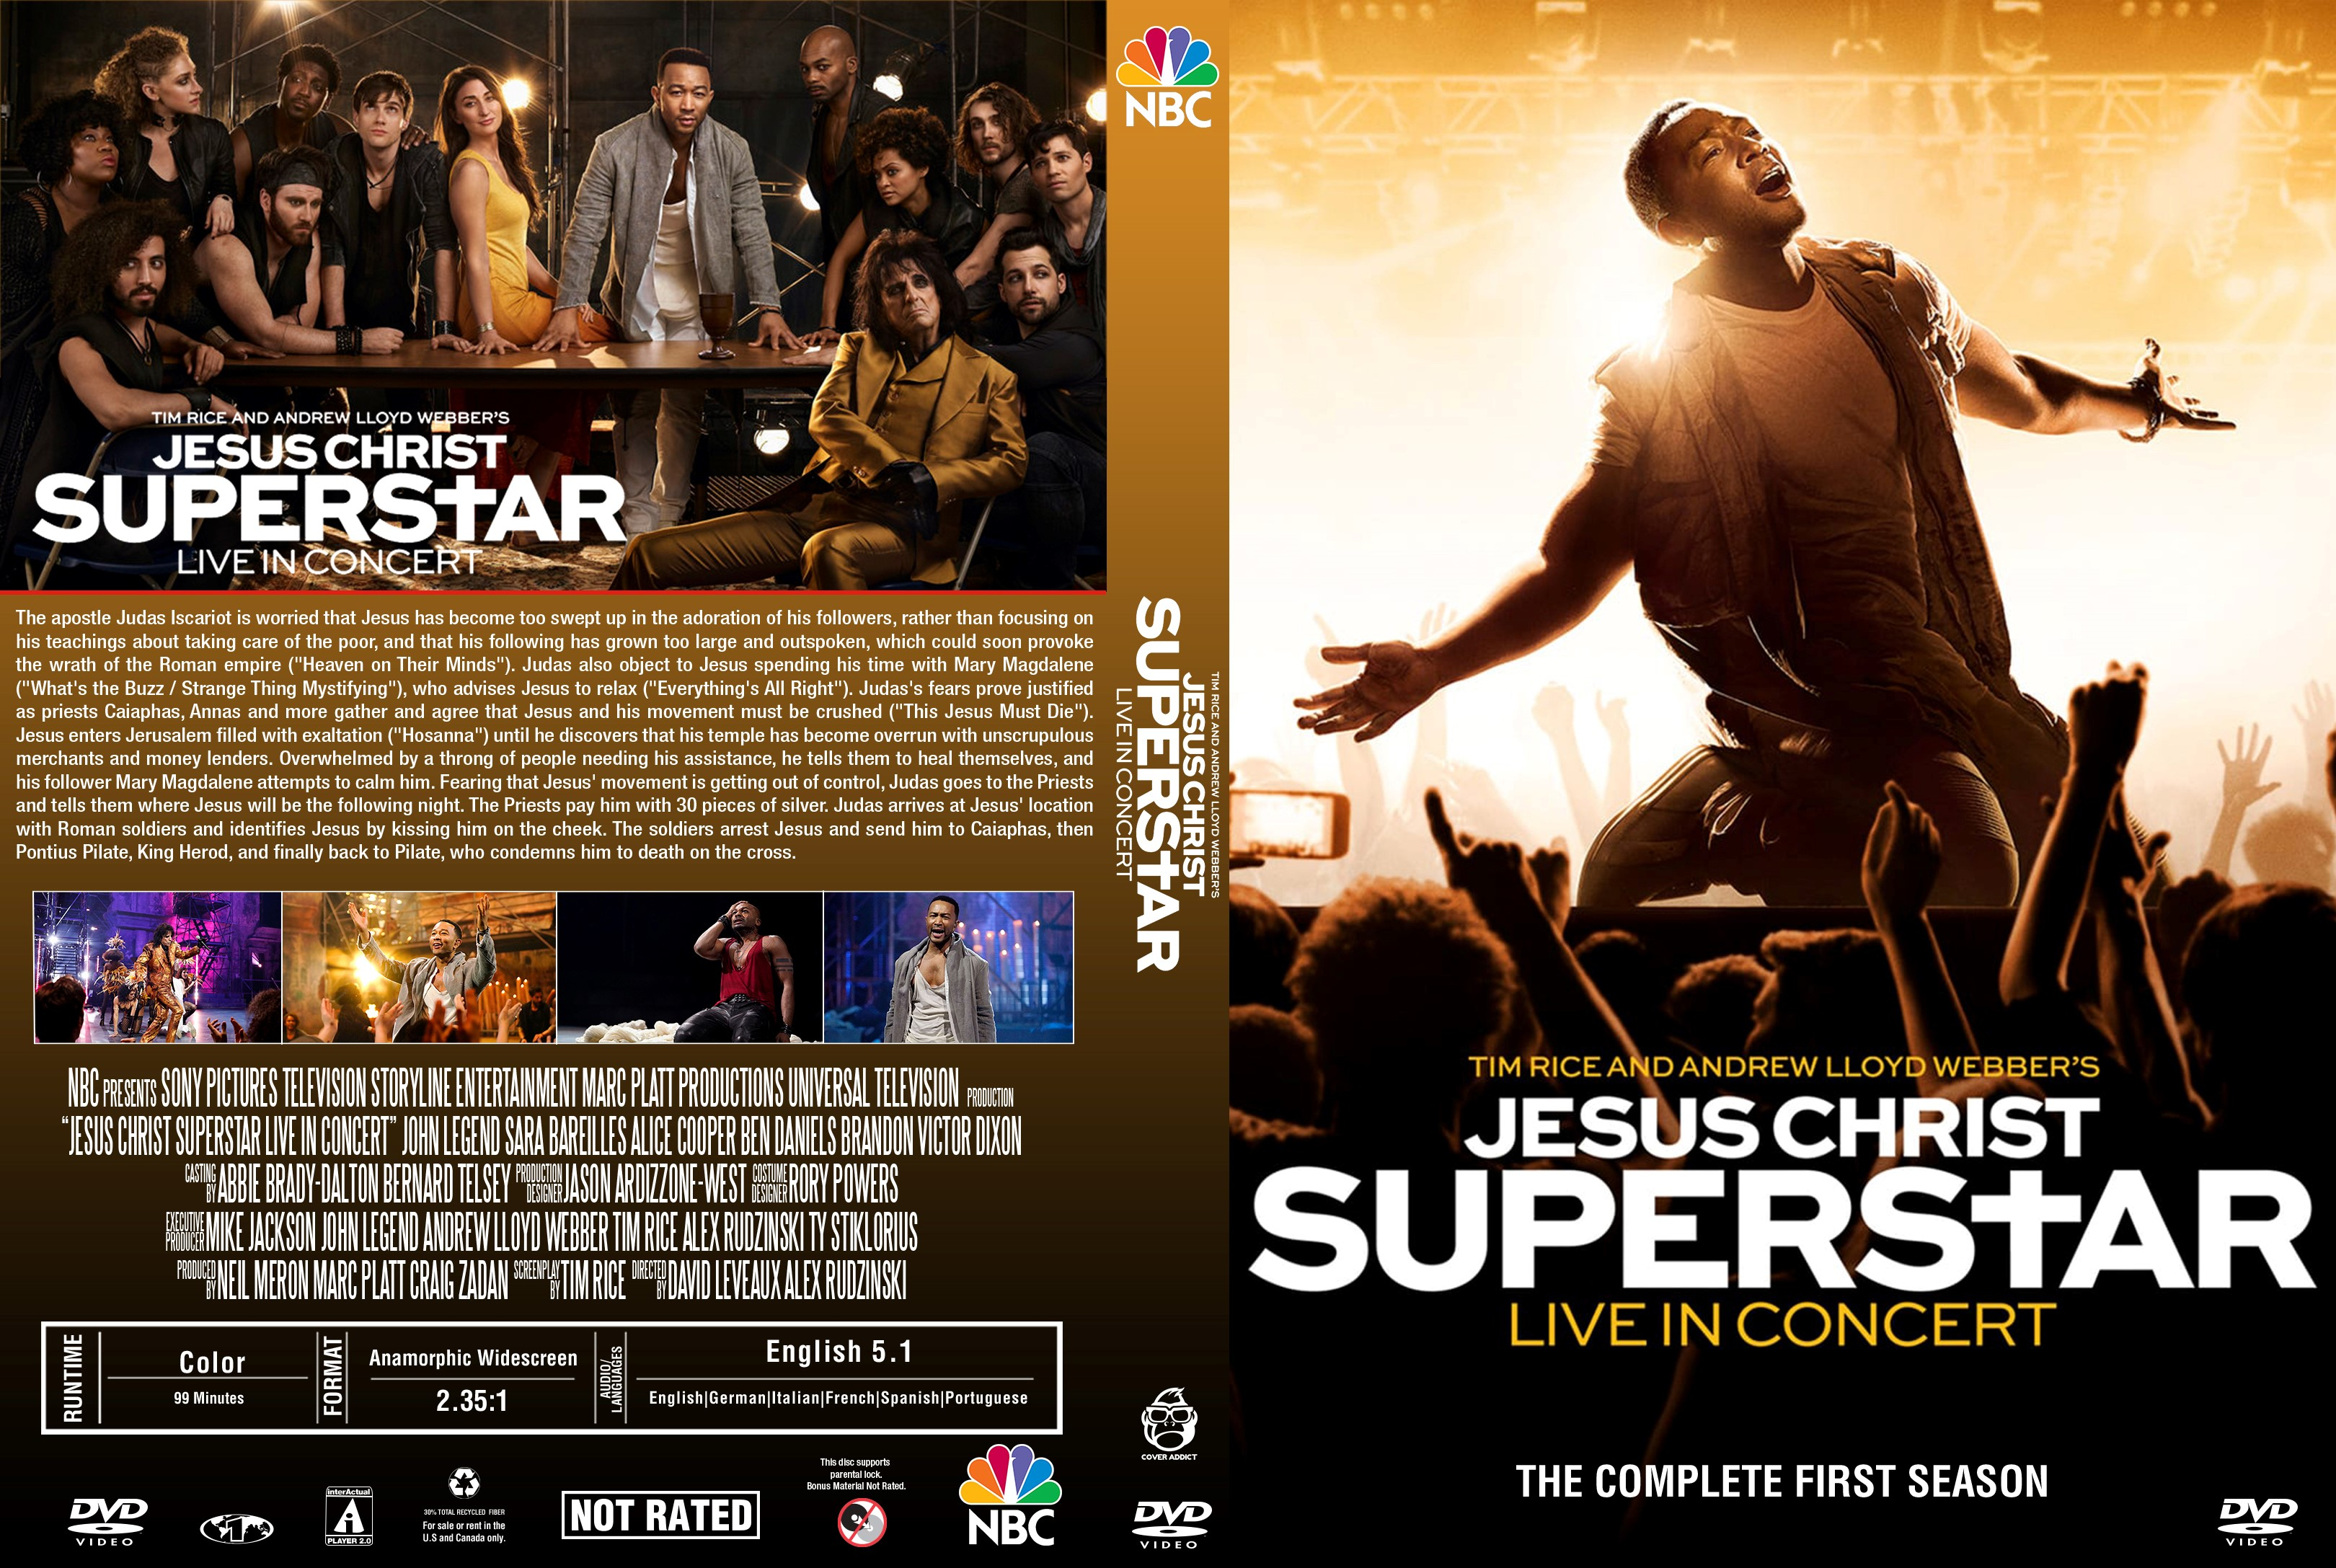 Jesus Christ Superstar Live in Concert DVD Cover ...